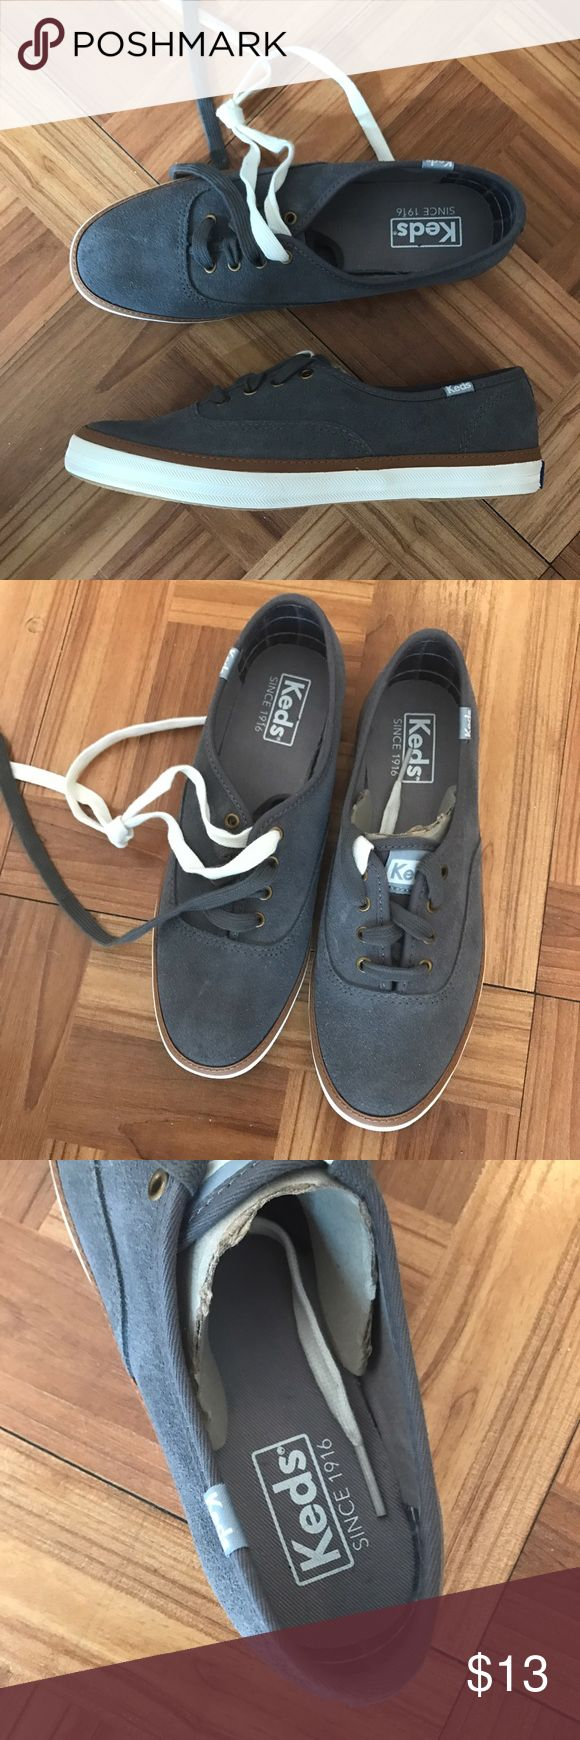 KEDS grey lace up sneakers brand new never worn 6 Brand new never worn sneakers by KEDS, these are size 6. I don't know there style name unfortunately but they're perfect condition. Keds Shoes Sneakers